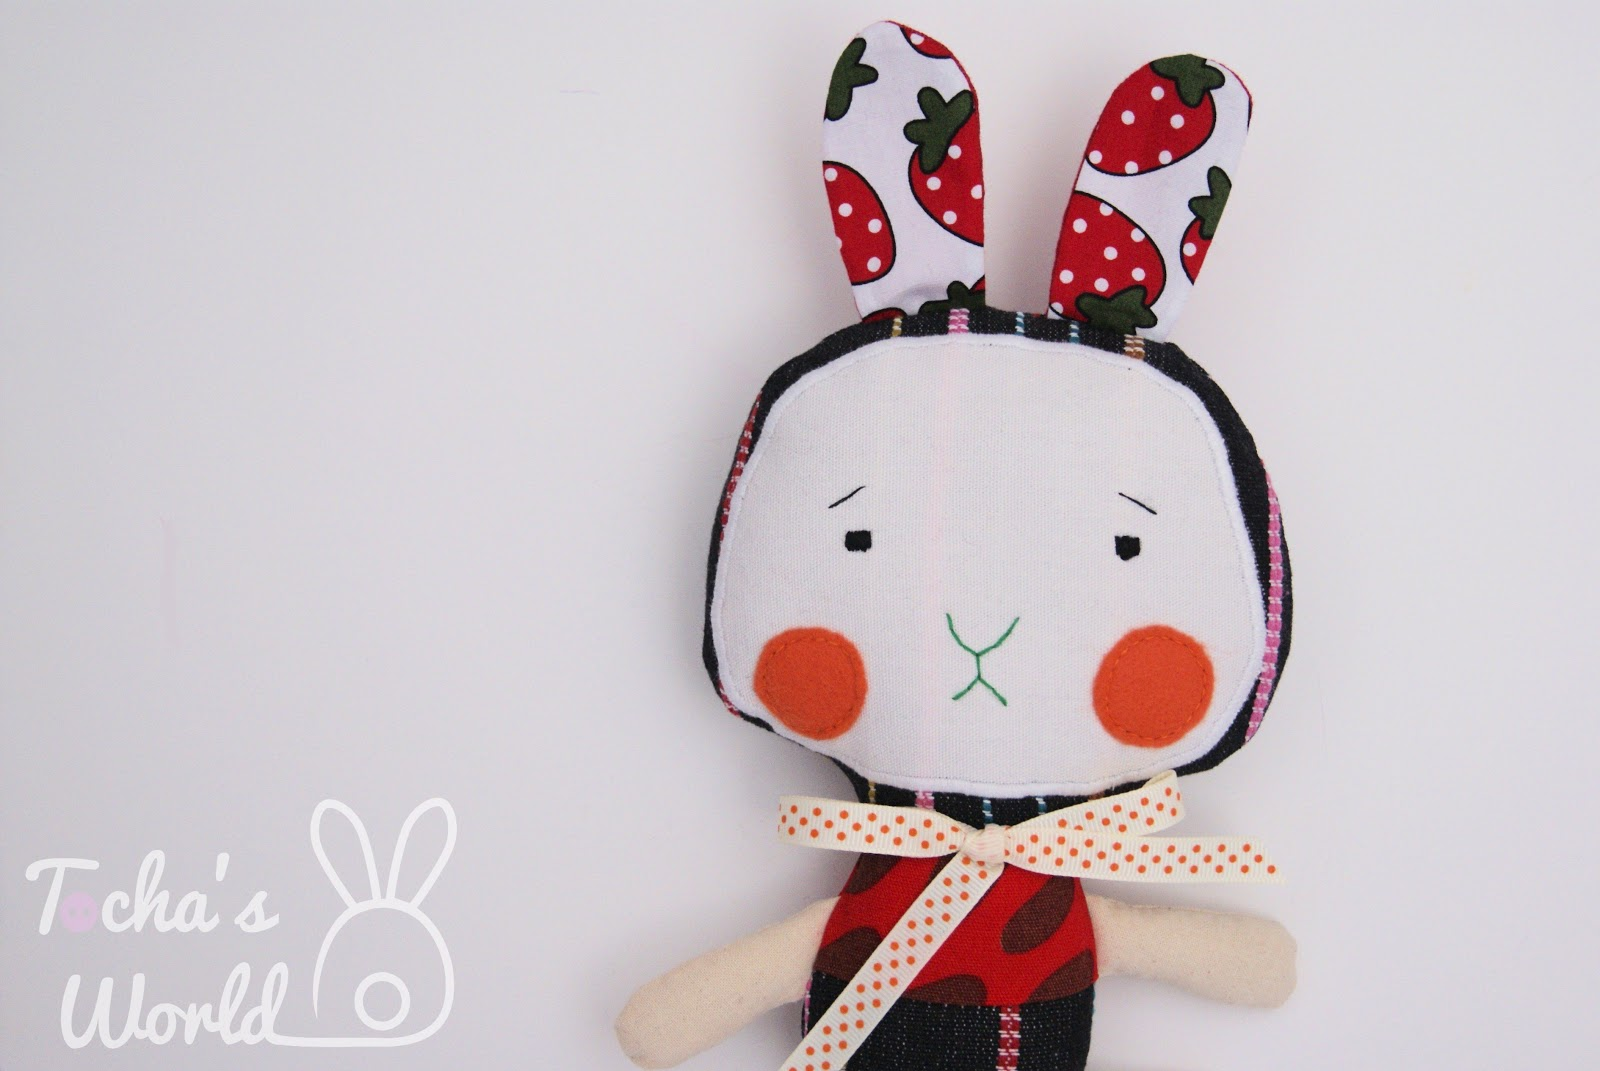 bunny, rabbit, stuffed toy, strawberry, cotton, ribbon, bow, bow tie, Ikea, printed fabric